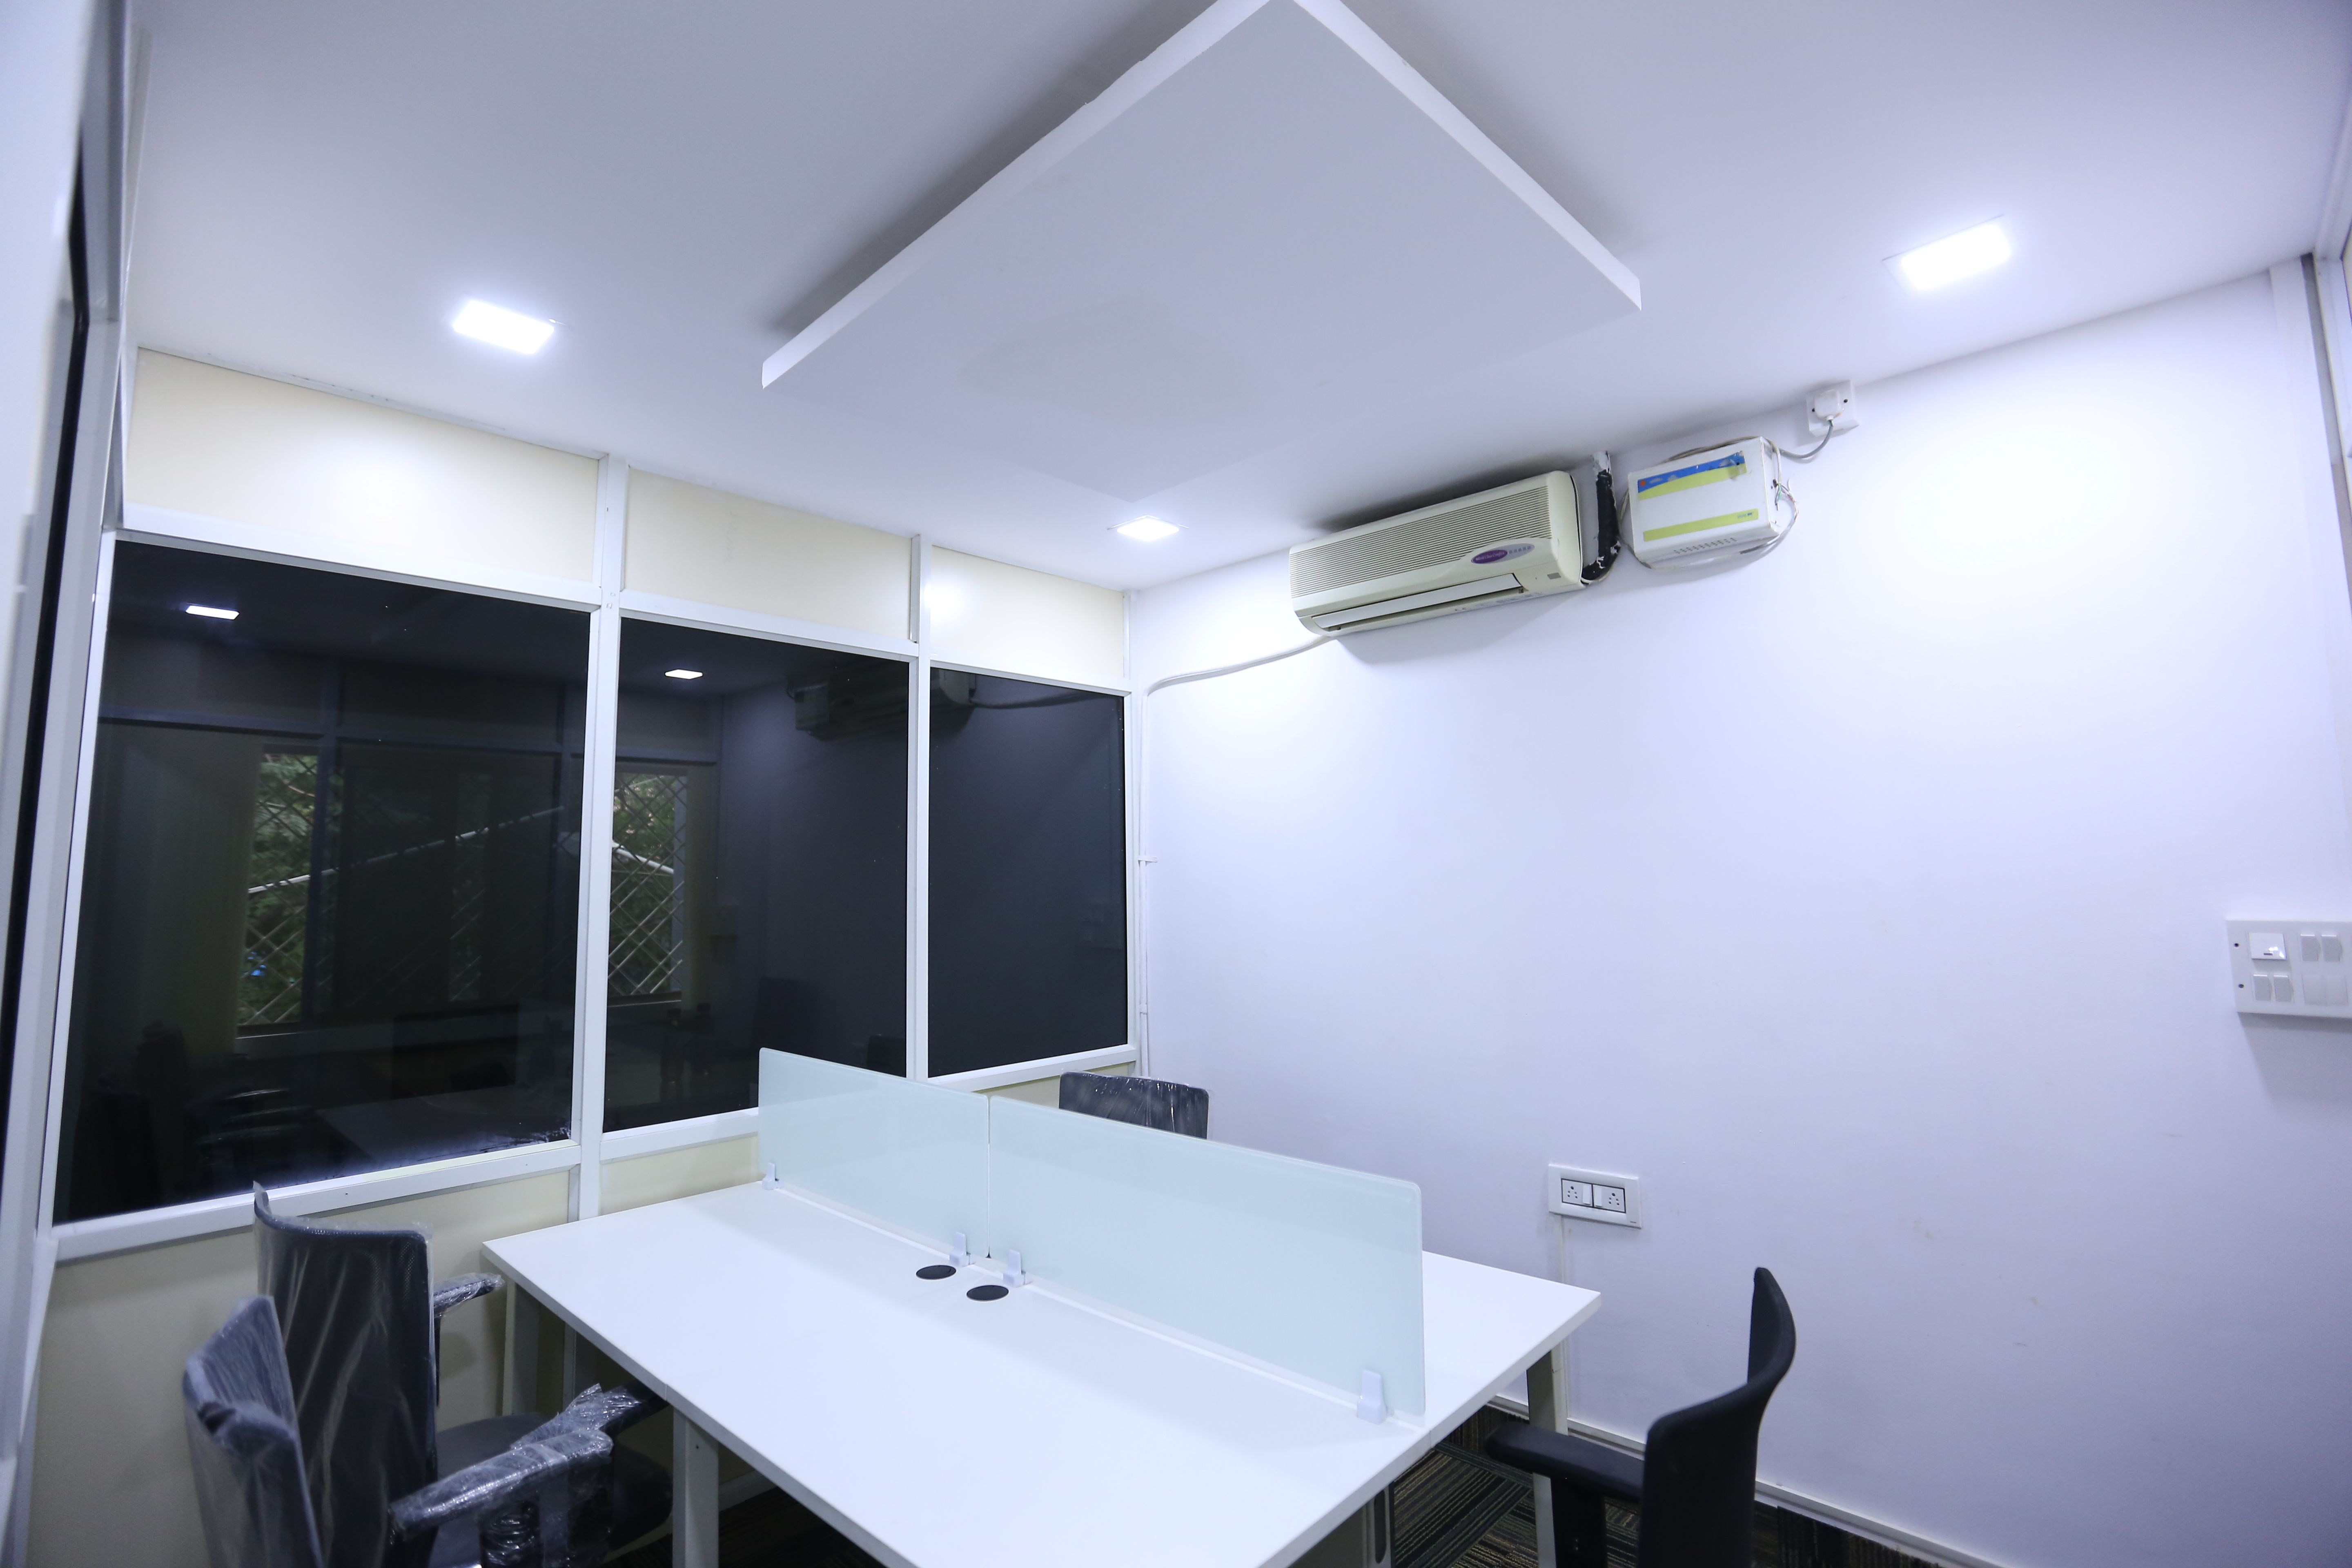 Get Best Office Space And Coworking Space In Bangalore For Rent Share Office Solutions Provide Virtual Office Coworking Space Offi Shared Office Coworking Space Space